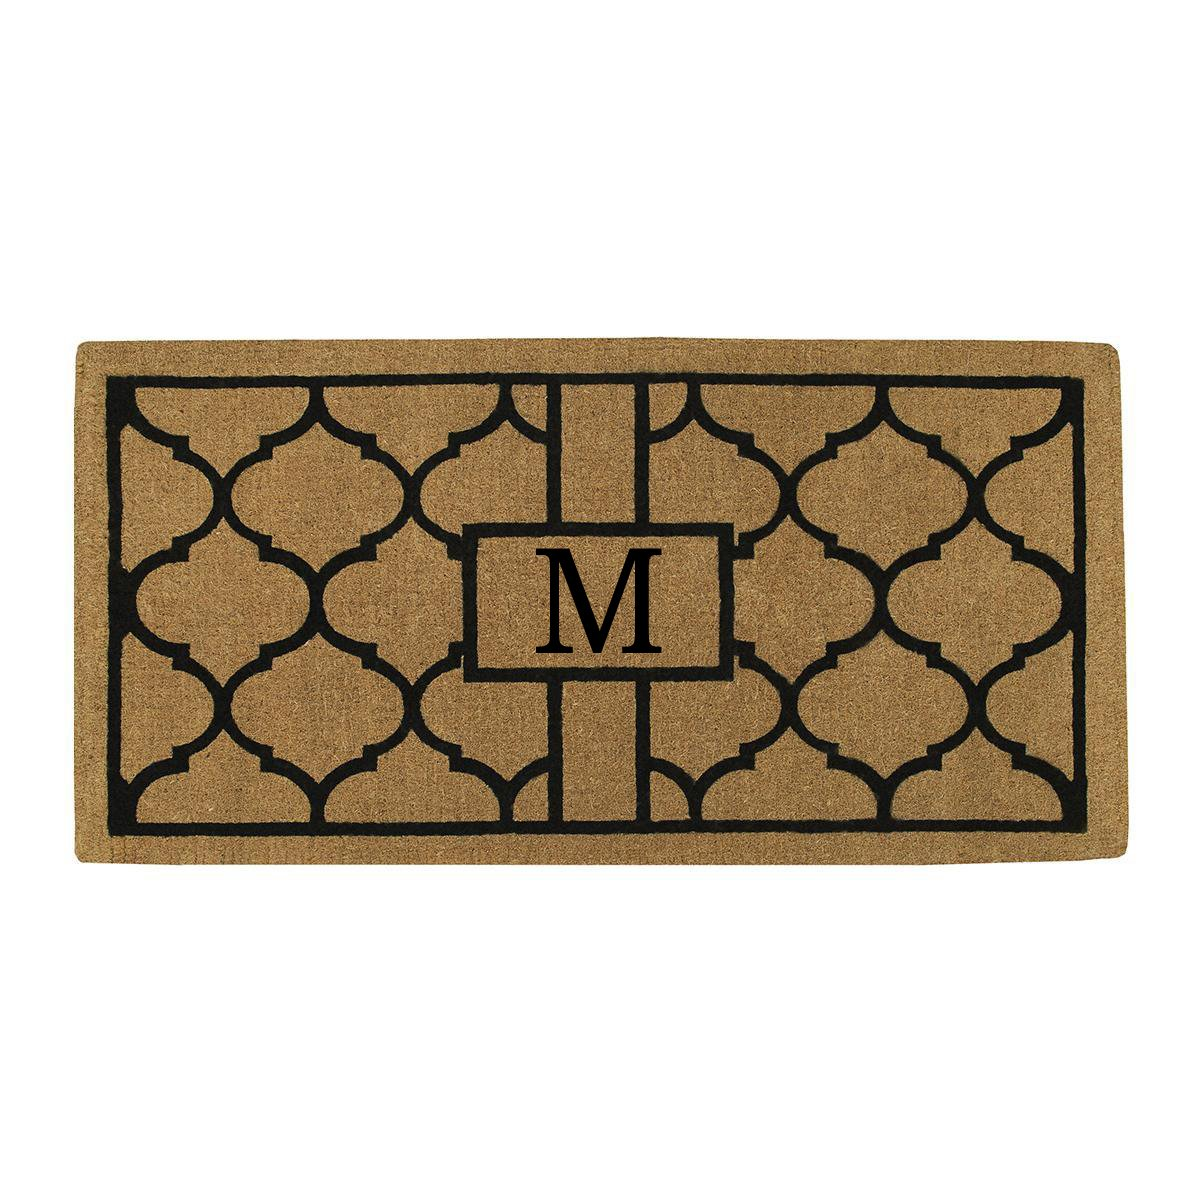 Home & More 180083672M Pantera Extra-thick Doormat, 36'' x 72'' x 1.50'', Monogrammed Letter M, Natural/Black